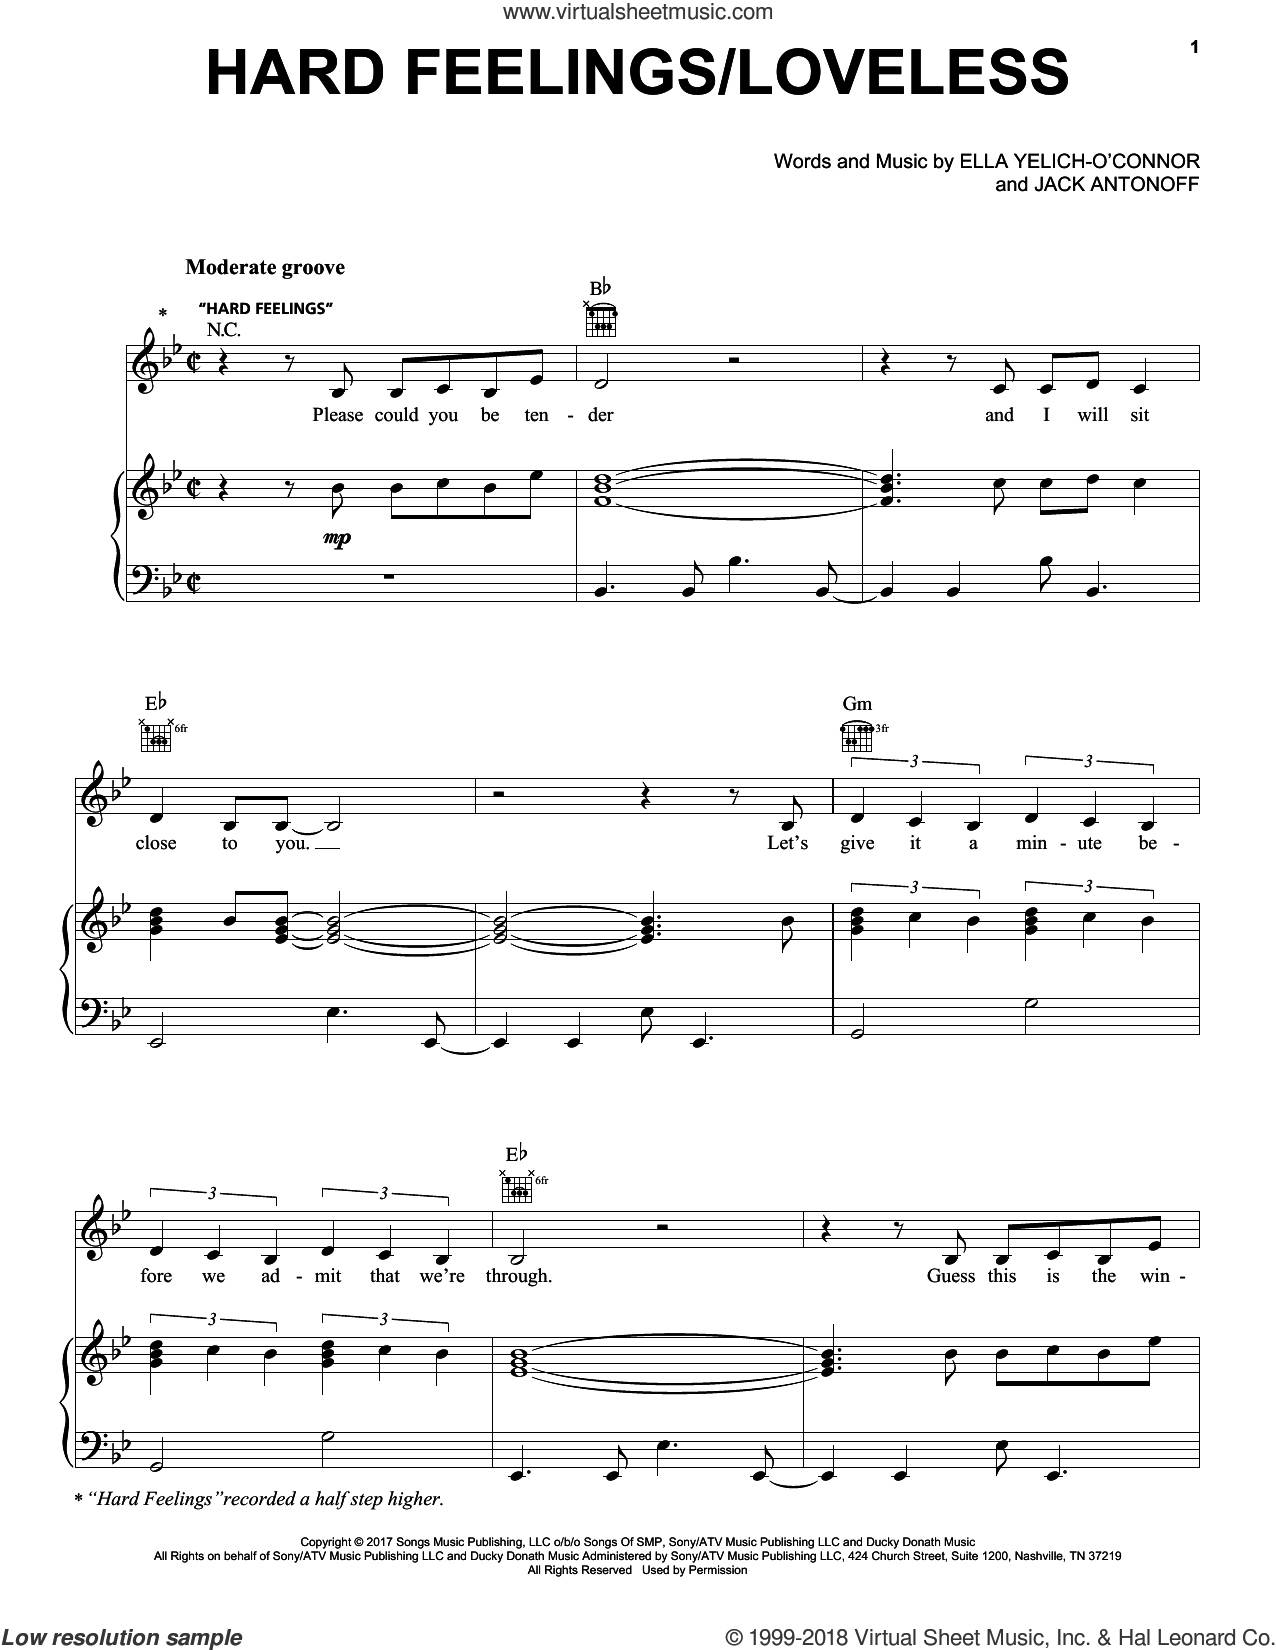 Hard Feelings/Loveless sheet music for voice, piano or guitar by Lorde and Jack Antonoff, intermediate skill level